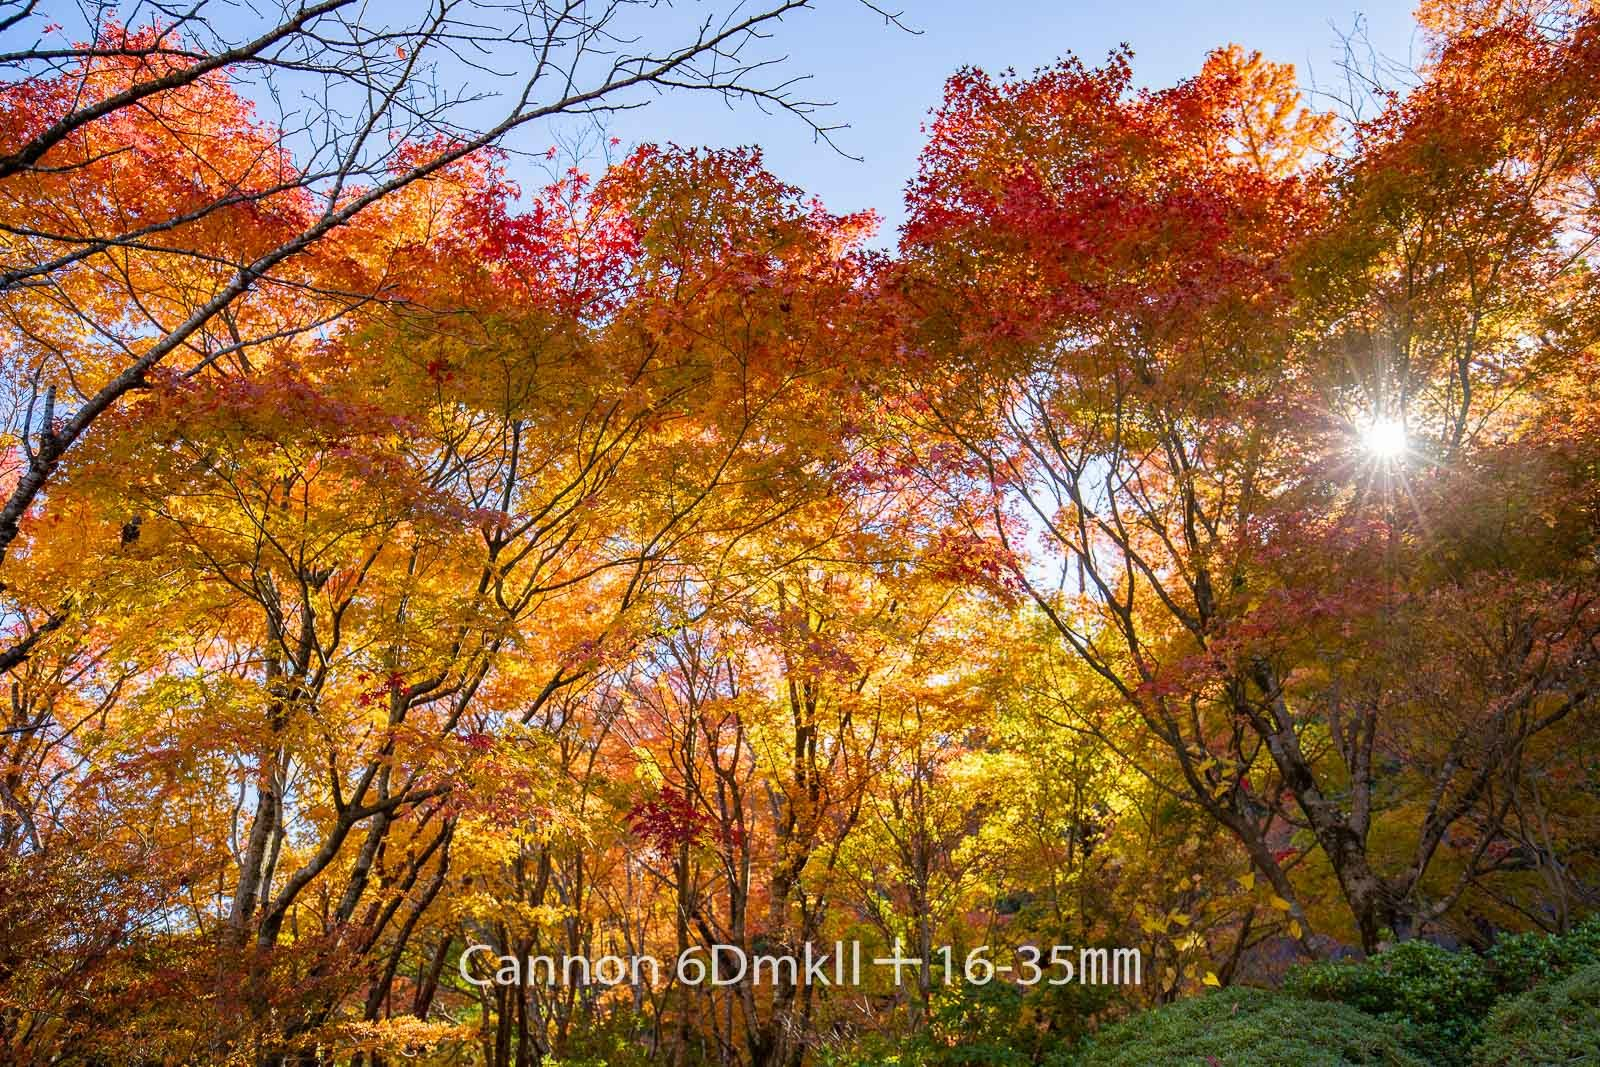 181103 英彦山紅葉6ⅮⅡ-19 Canon EOS 6D Mark II ISO 200 27 mm 6240 x 4160